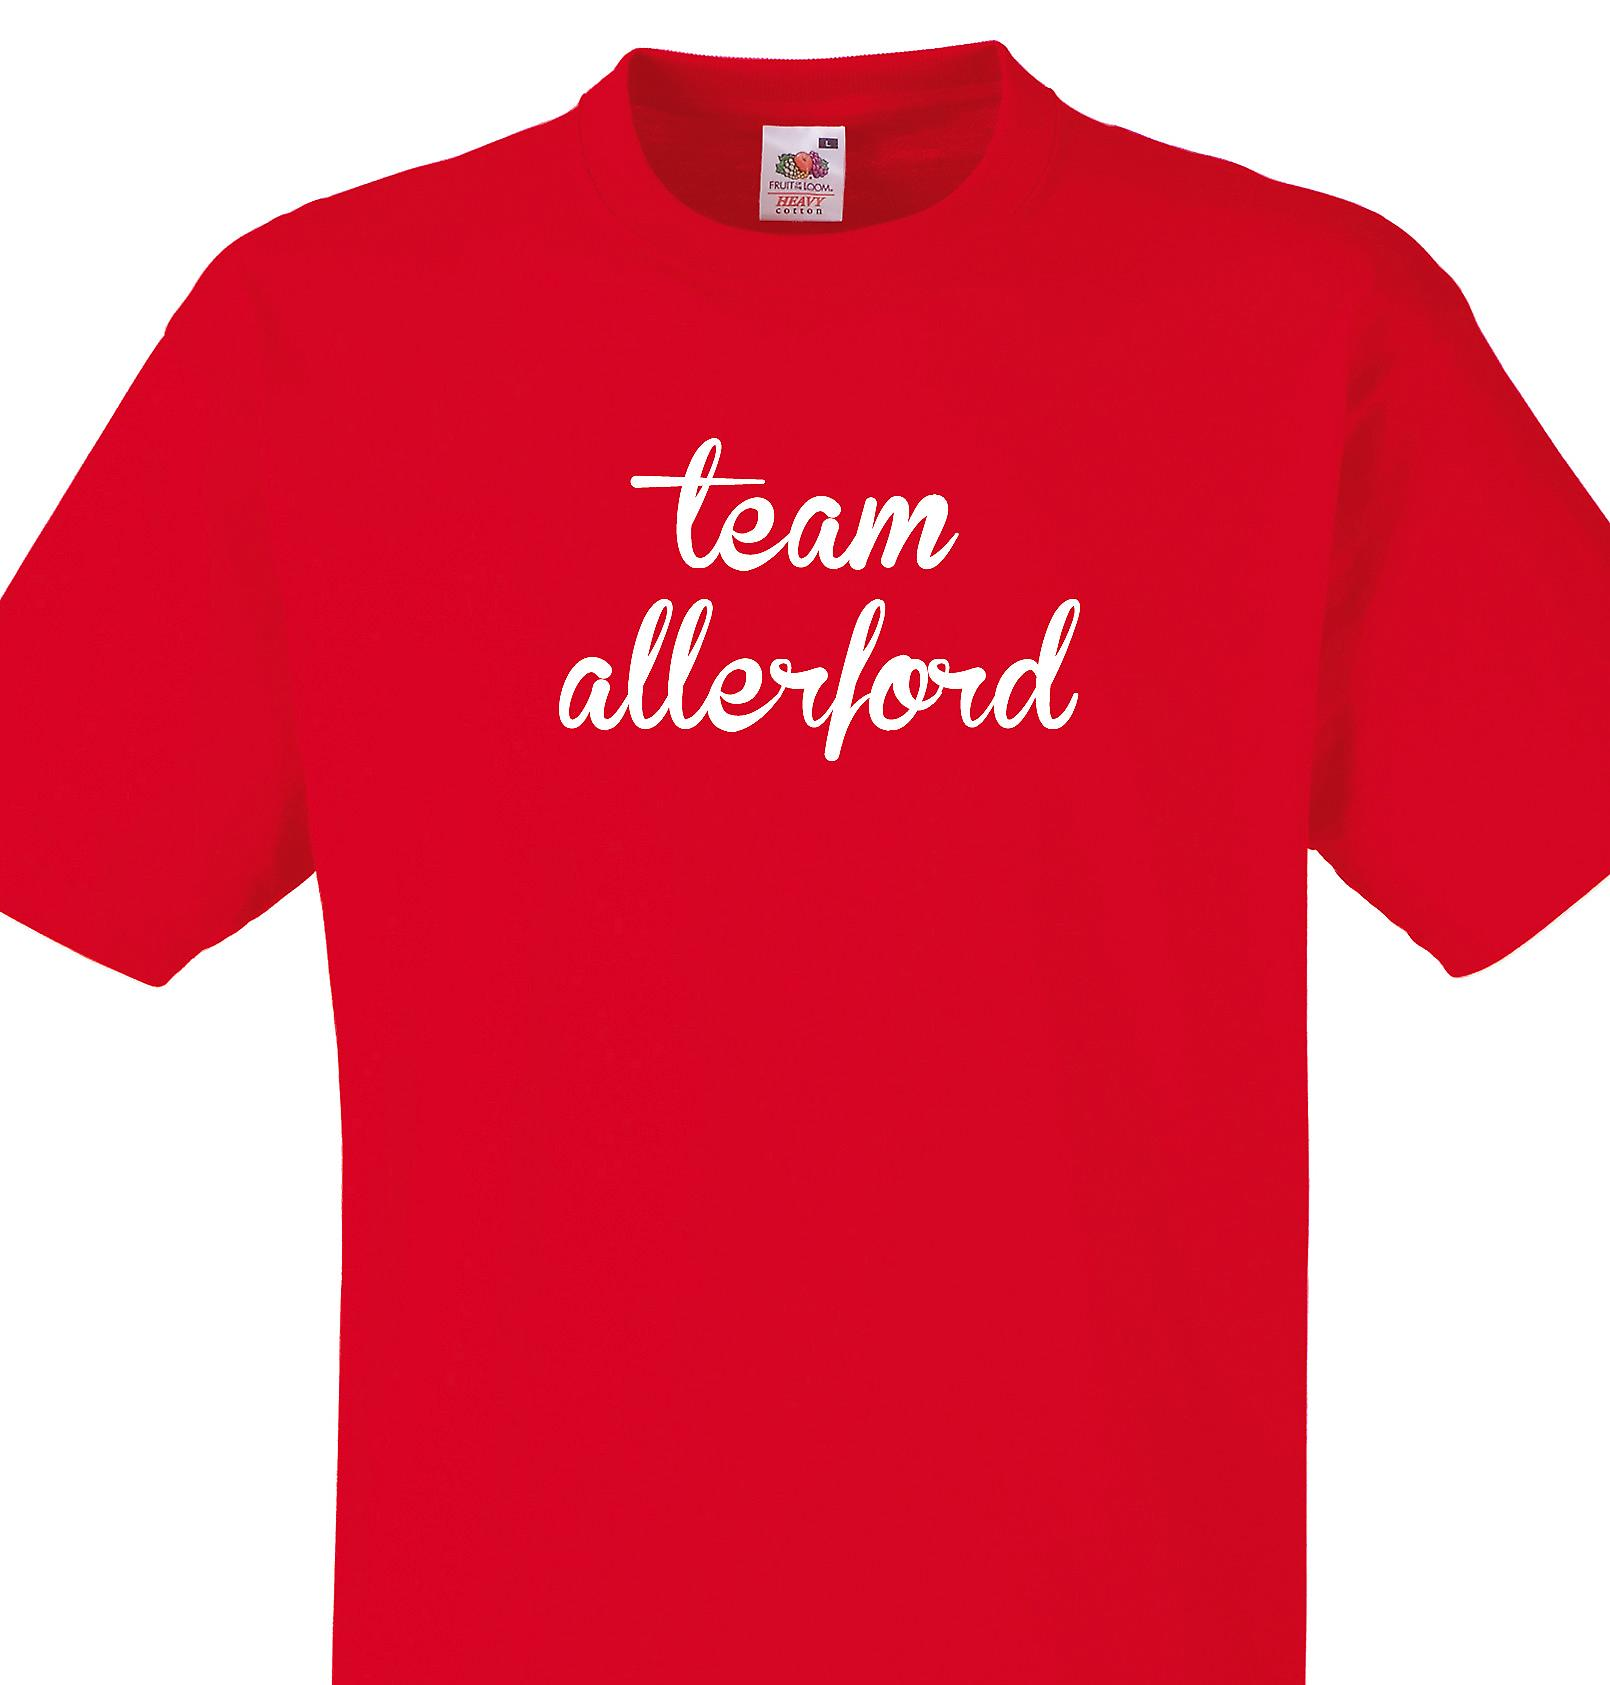 Team Allerford Red T shirt